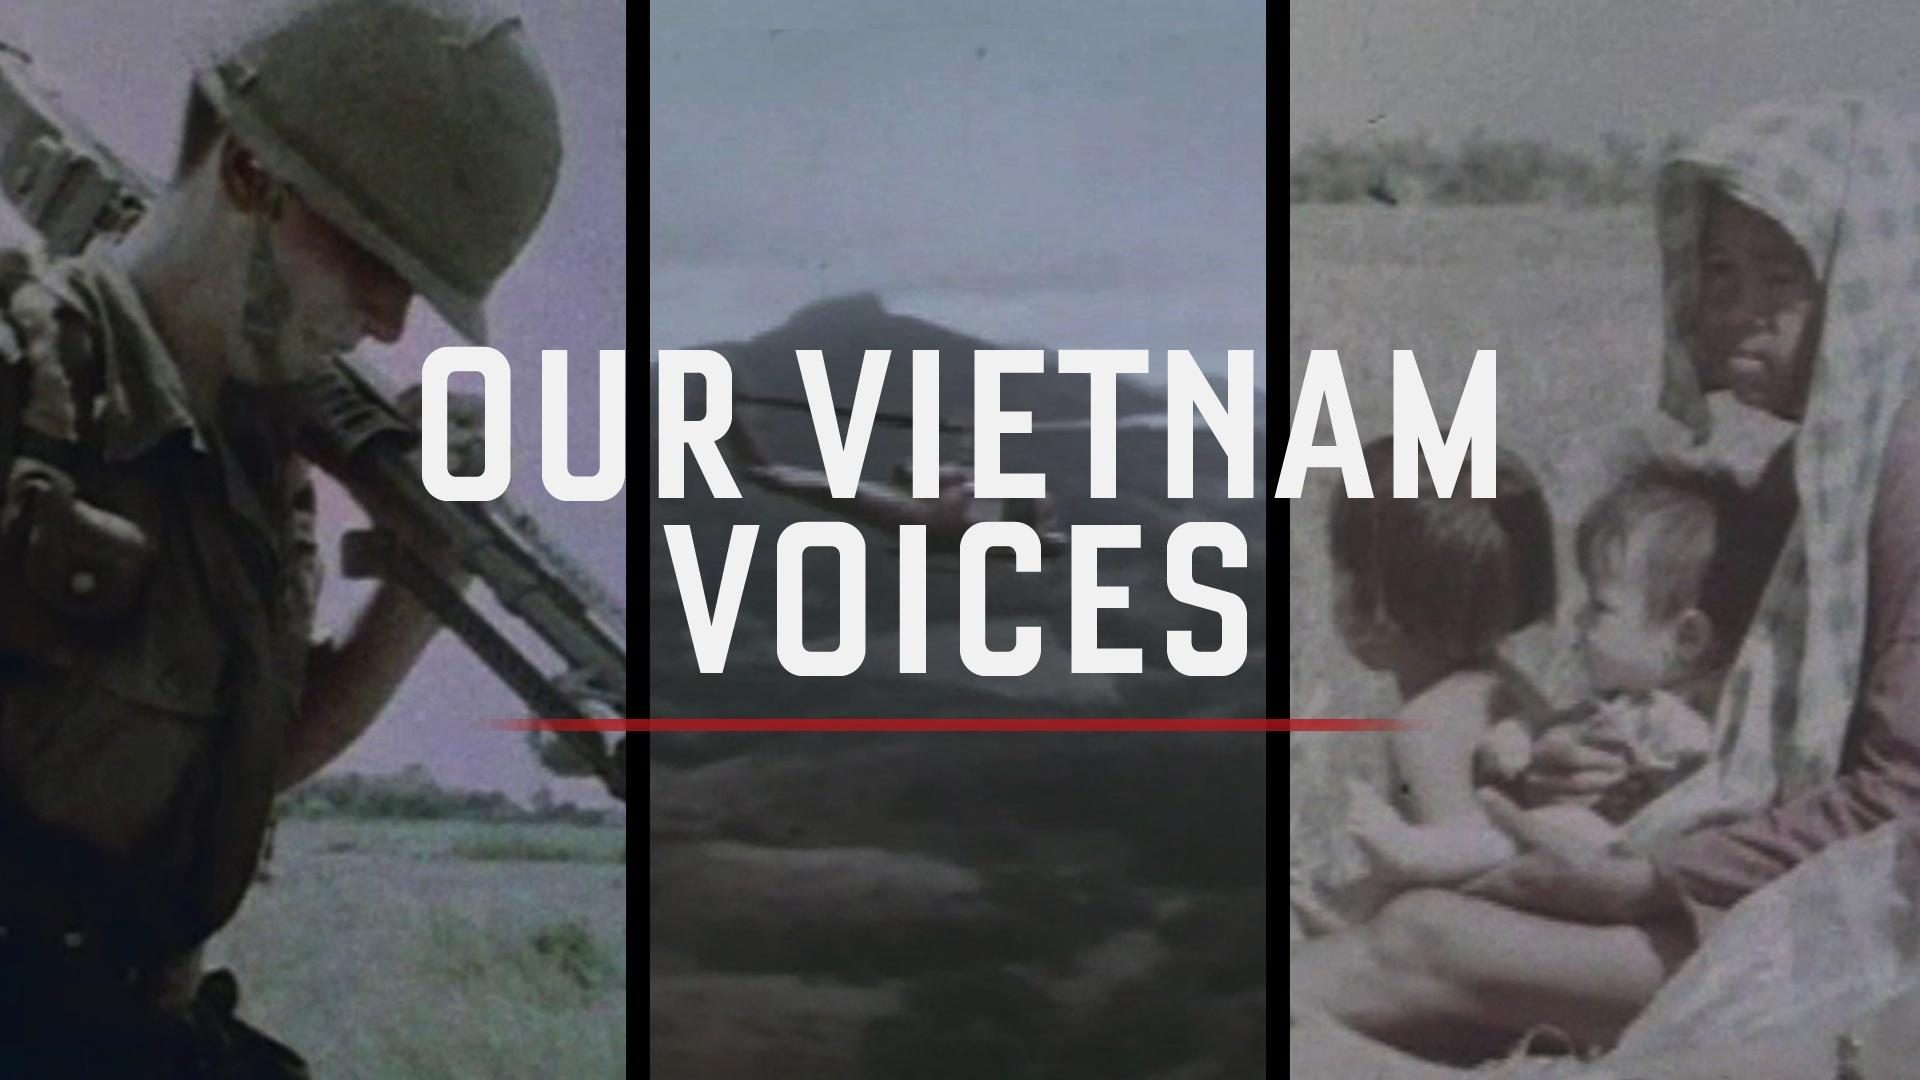 Our Vietnam Voices